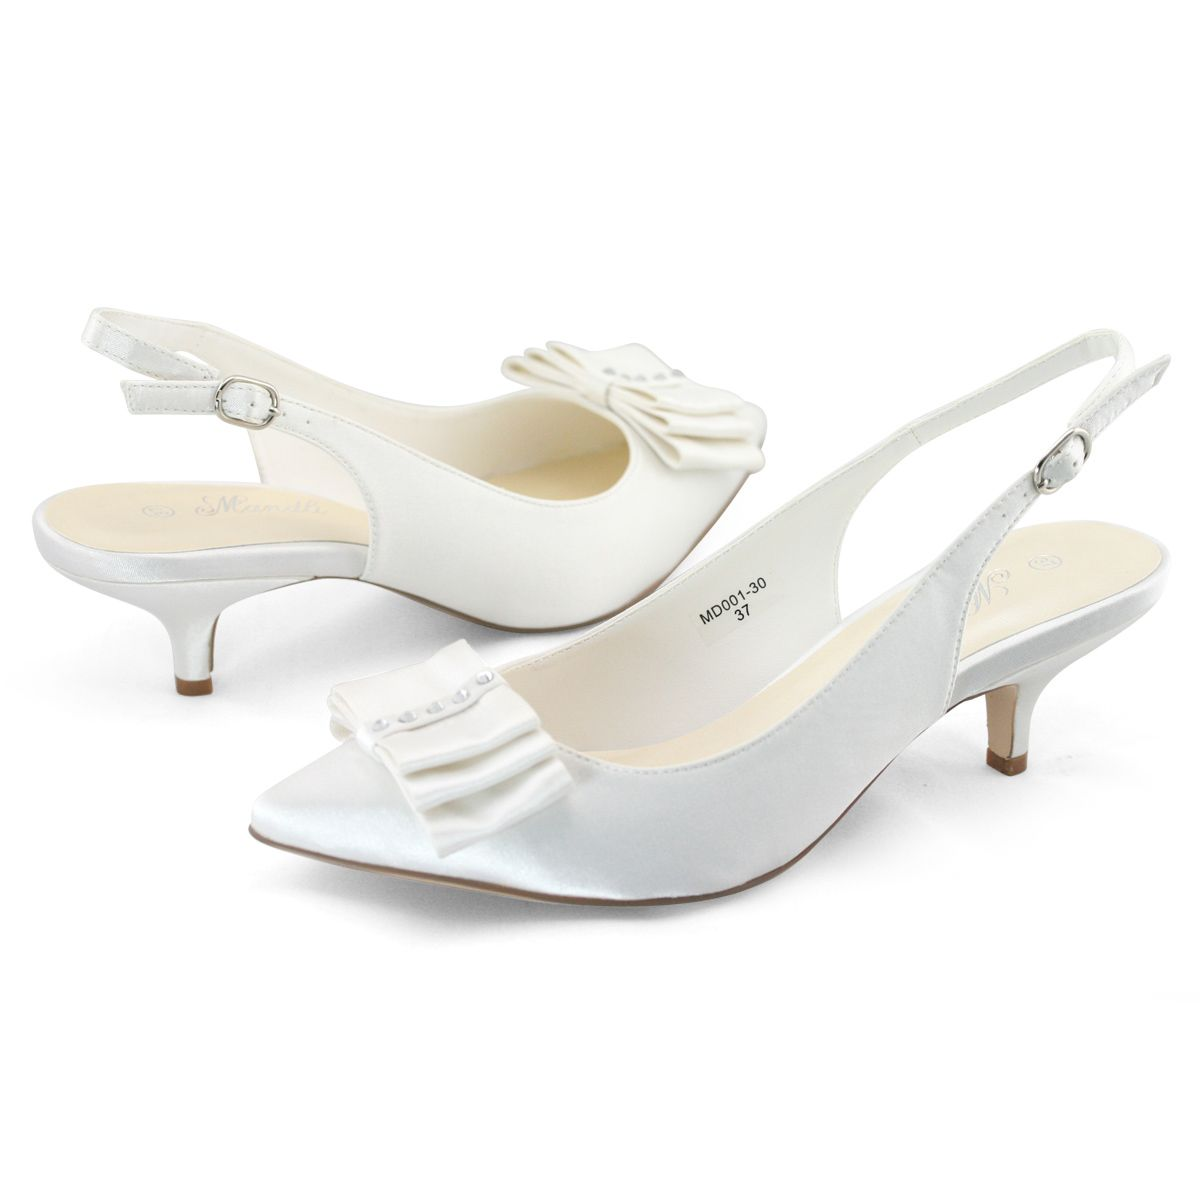 Shoezy Ladies Satin Bow Wedding Party Dress Slingback Low Kitten Heels Shoes Uk Kitten Heel Shoes Kitten Heels Heels